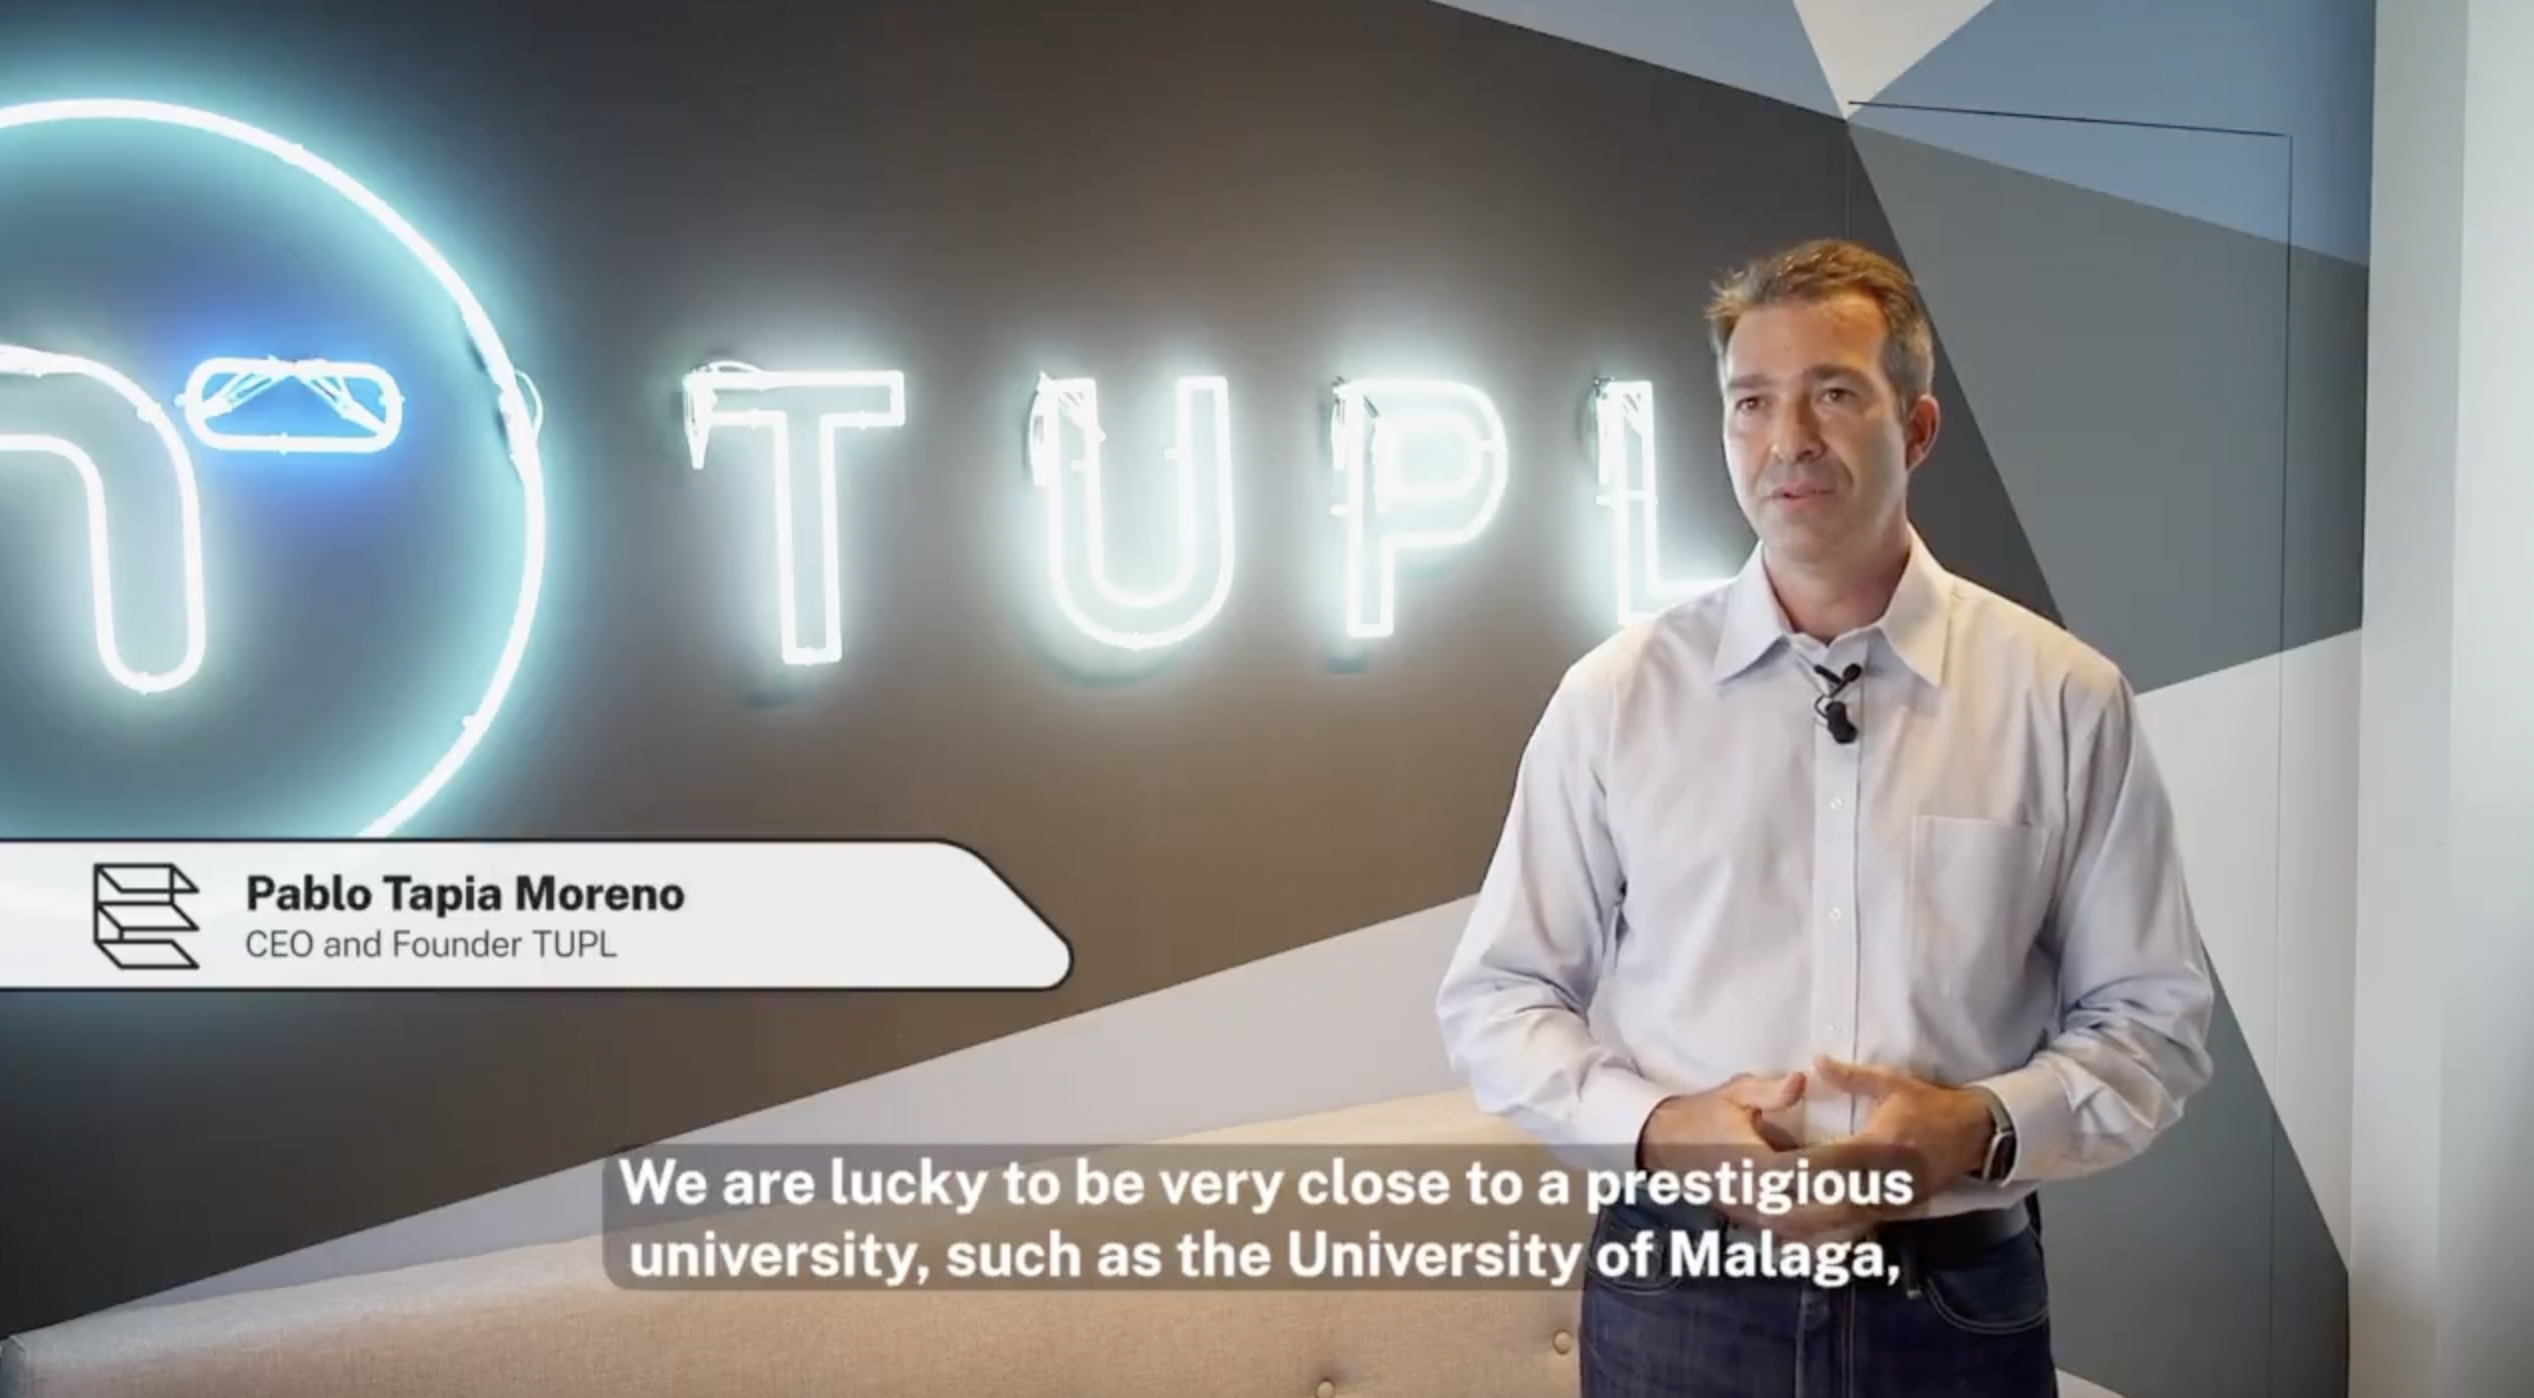 Pablo Tapia about the importance of attracting young talent for companies to grow